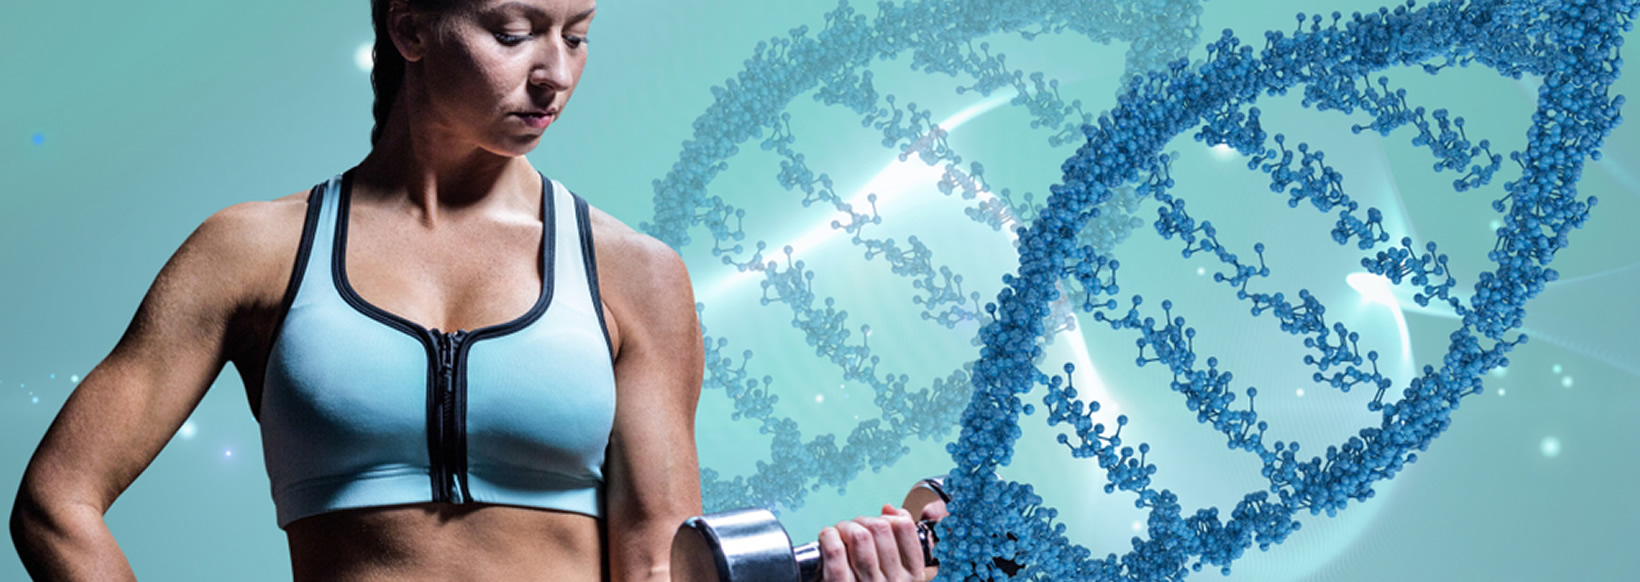 Fitness Genetics – What can it tell me?